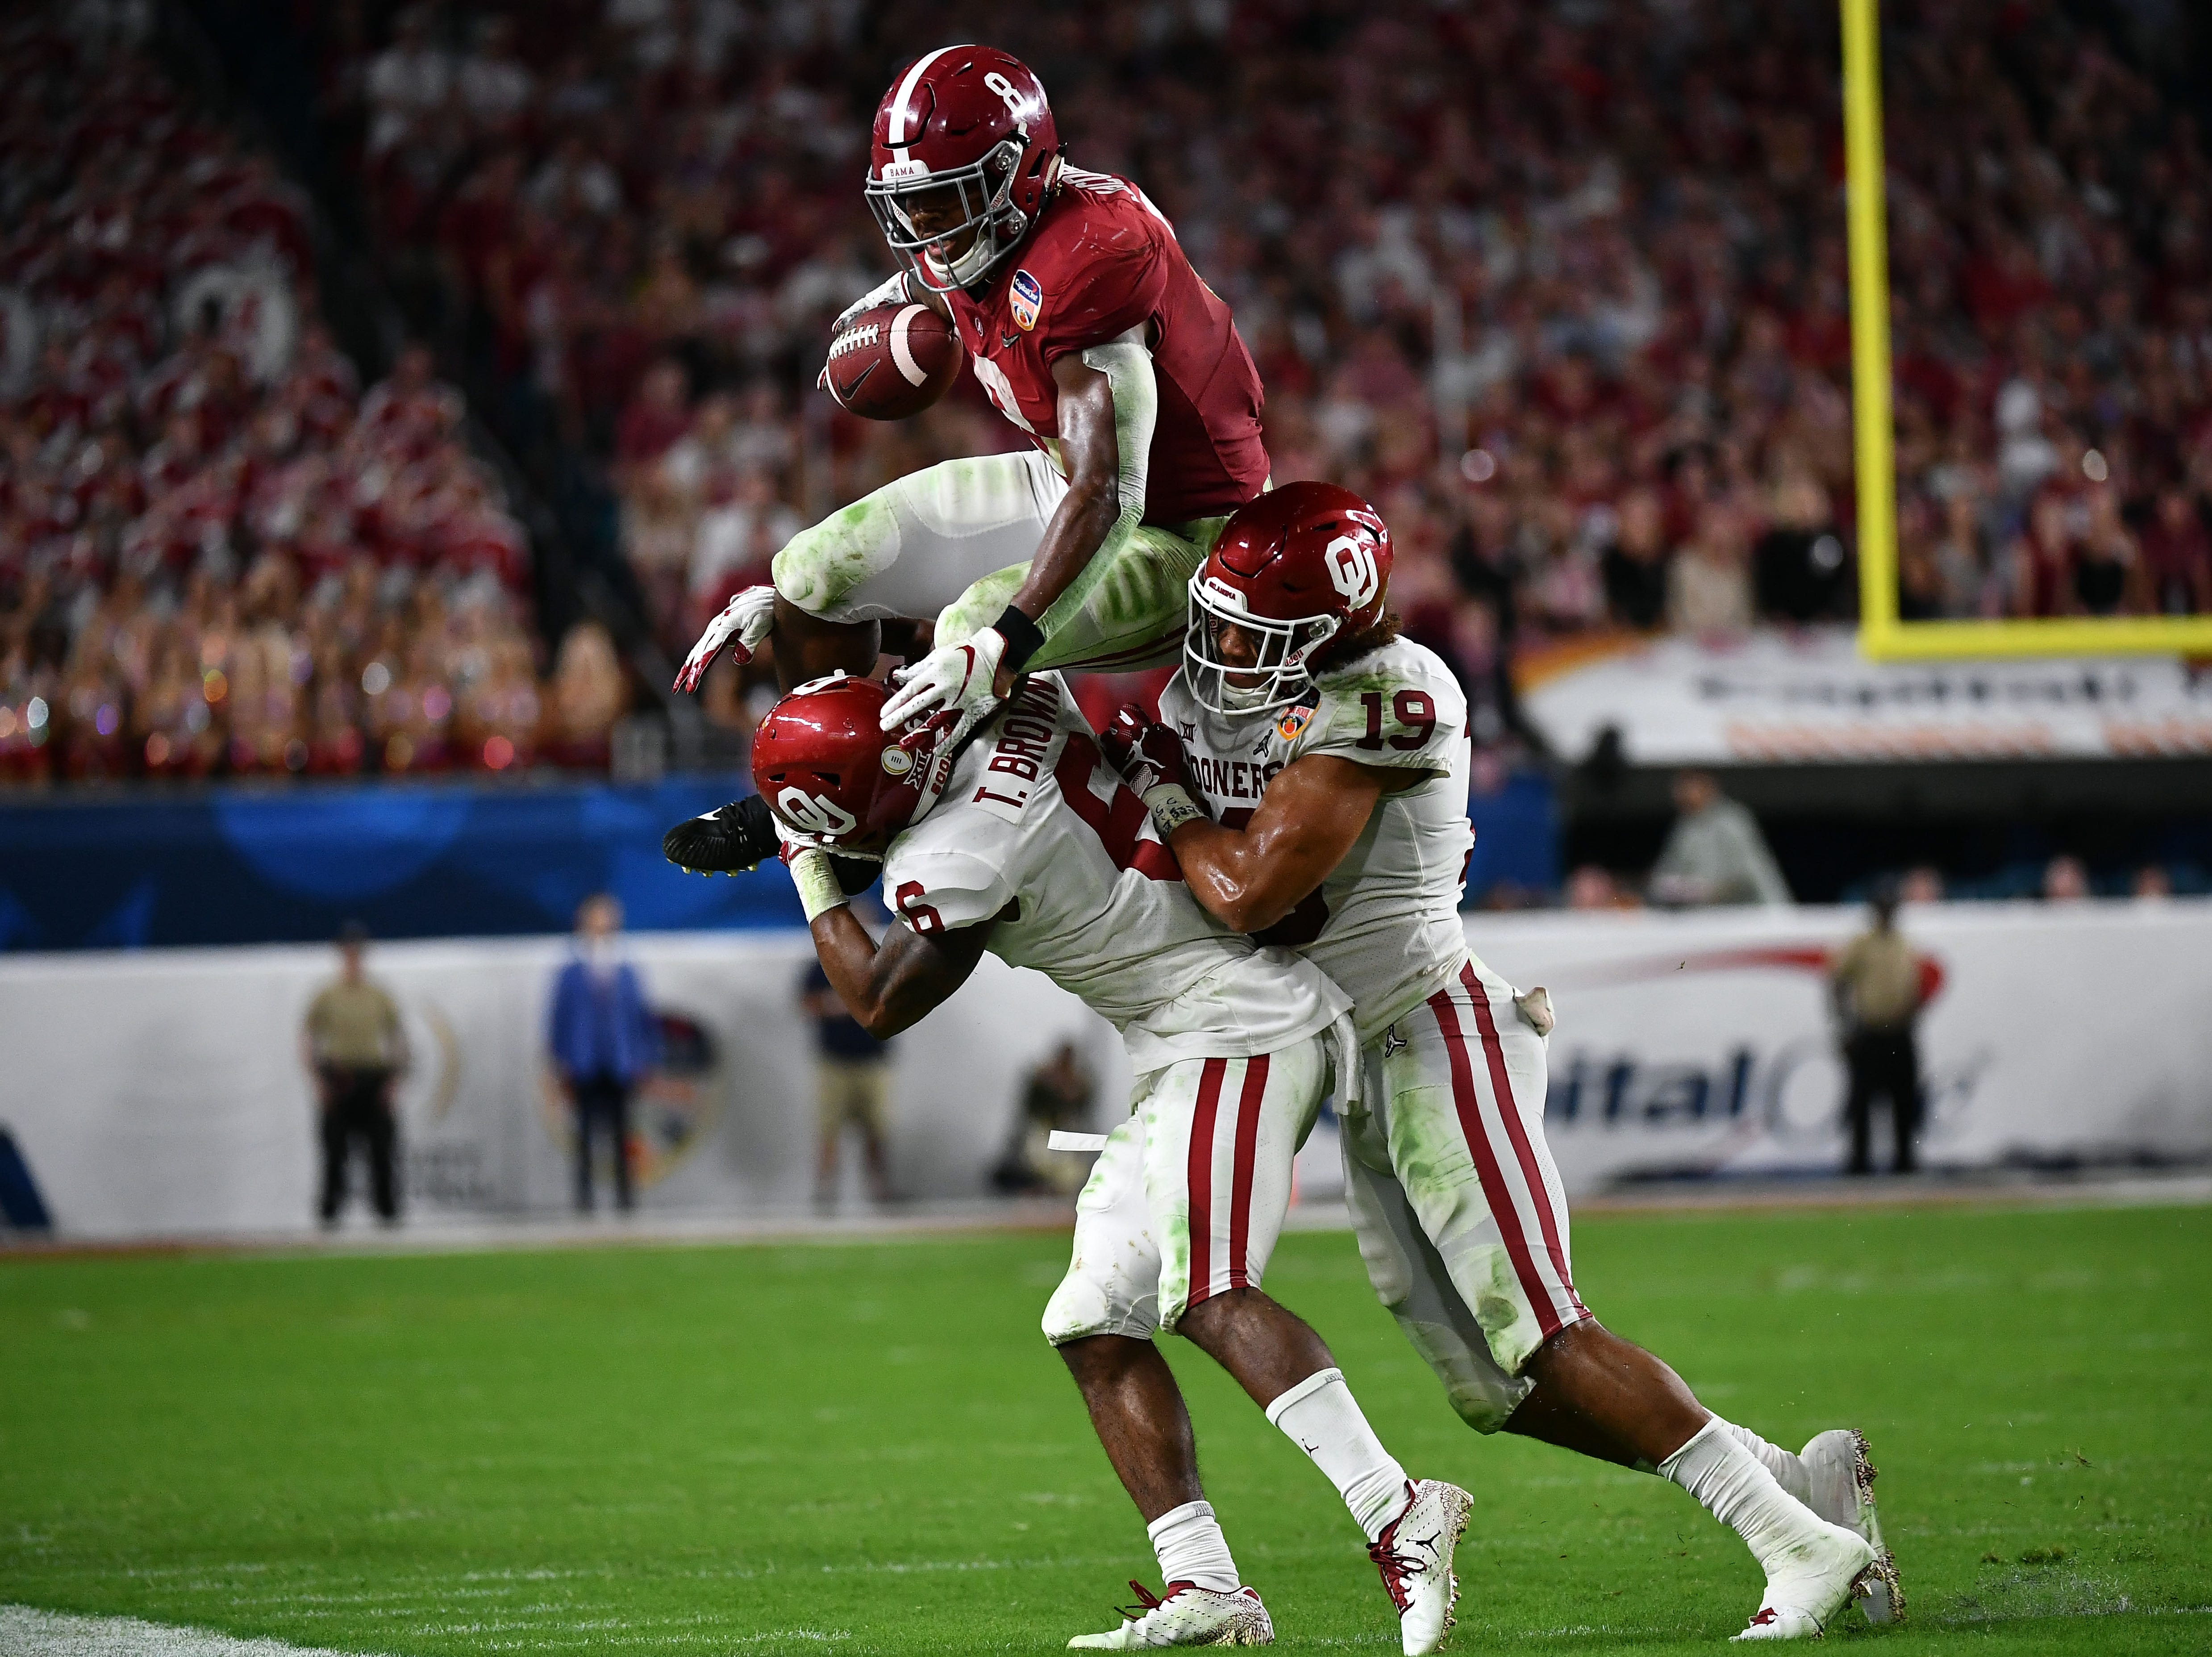 Dec. 29: Alabama Crimson Tide running back Josh Jacobs (8) attempts to jump over Oklahoma Sooners cornerback Tre Brown (6) and linebacker Caleb Kelly (19) during the Orange Bowl.